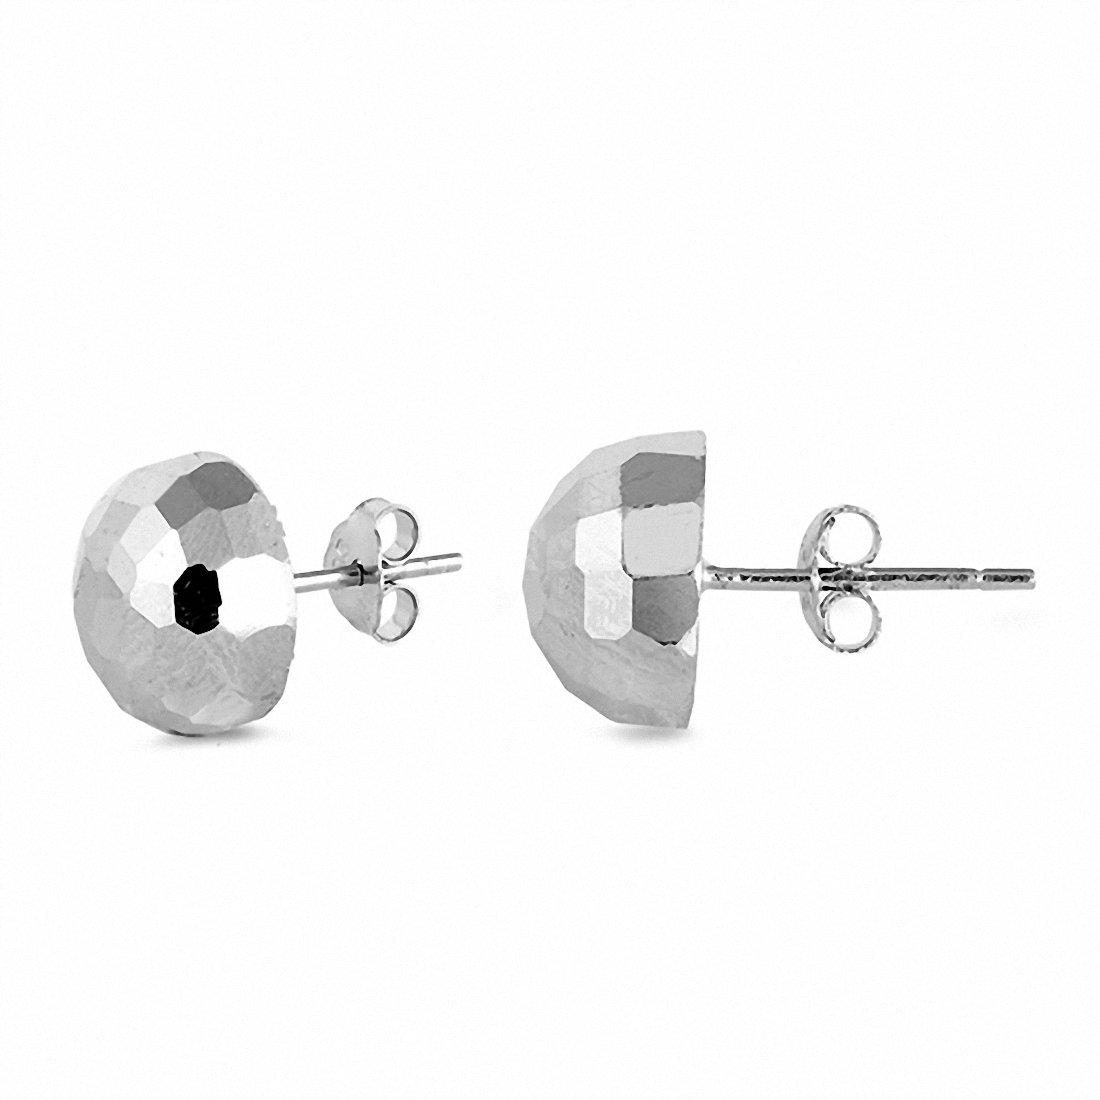 b81eadb07 8mm Half Ball Hammered Finish Stud Earrings 925 Sterling Silver Choose  Color. Tap to expand